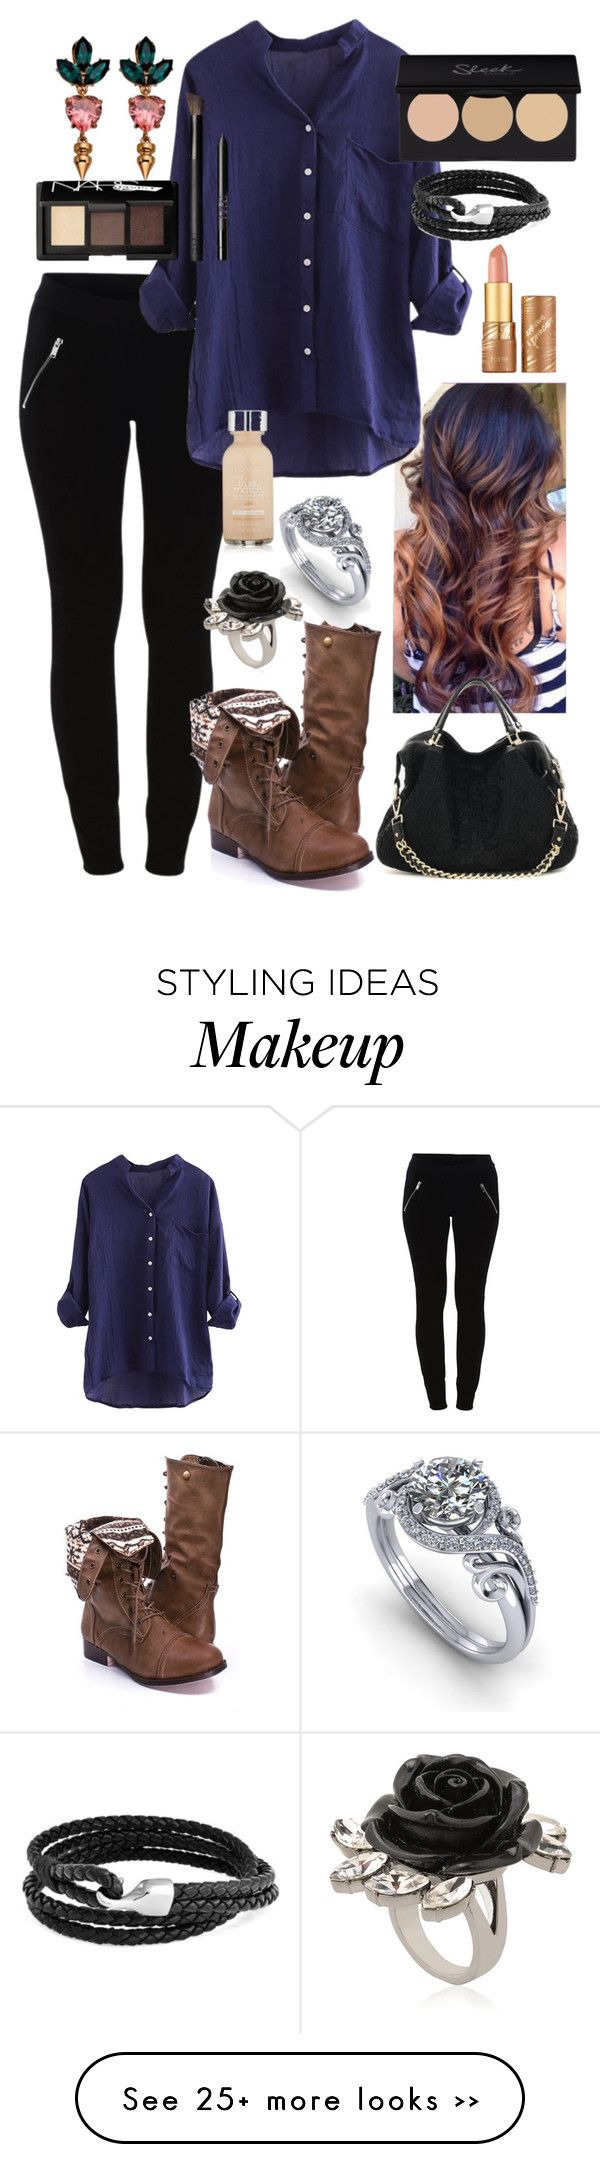 """""""Untitled #511"""" by aralynwinchester on Polyvore featuring VILA, Mawi, L'Oréal Paris, tarte, NARS Cosmetics and Bling Jewelry"""